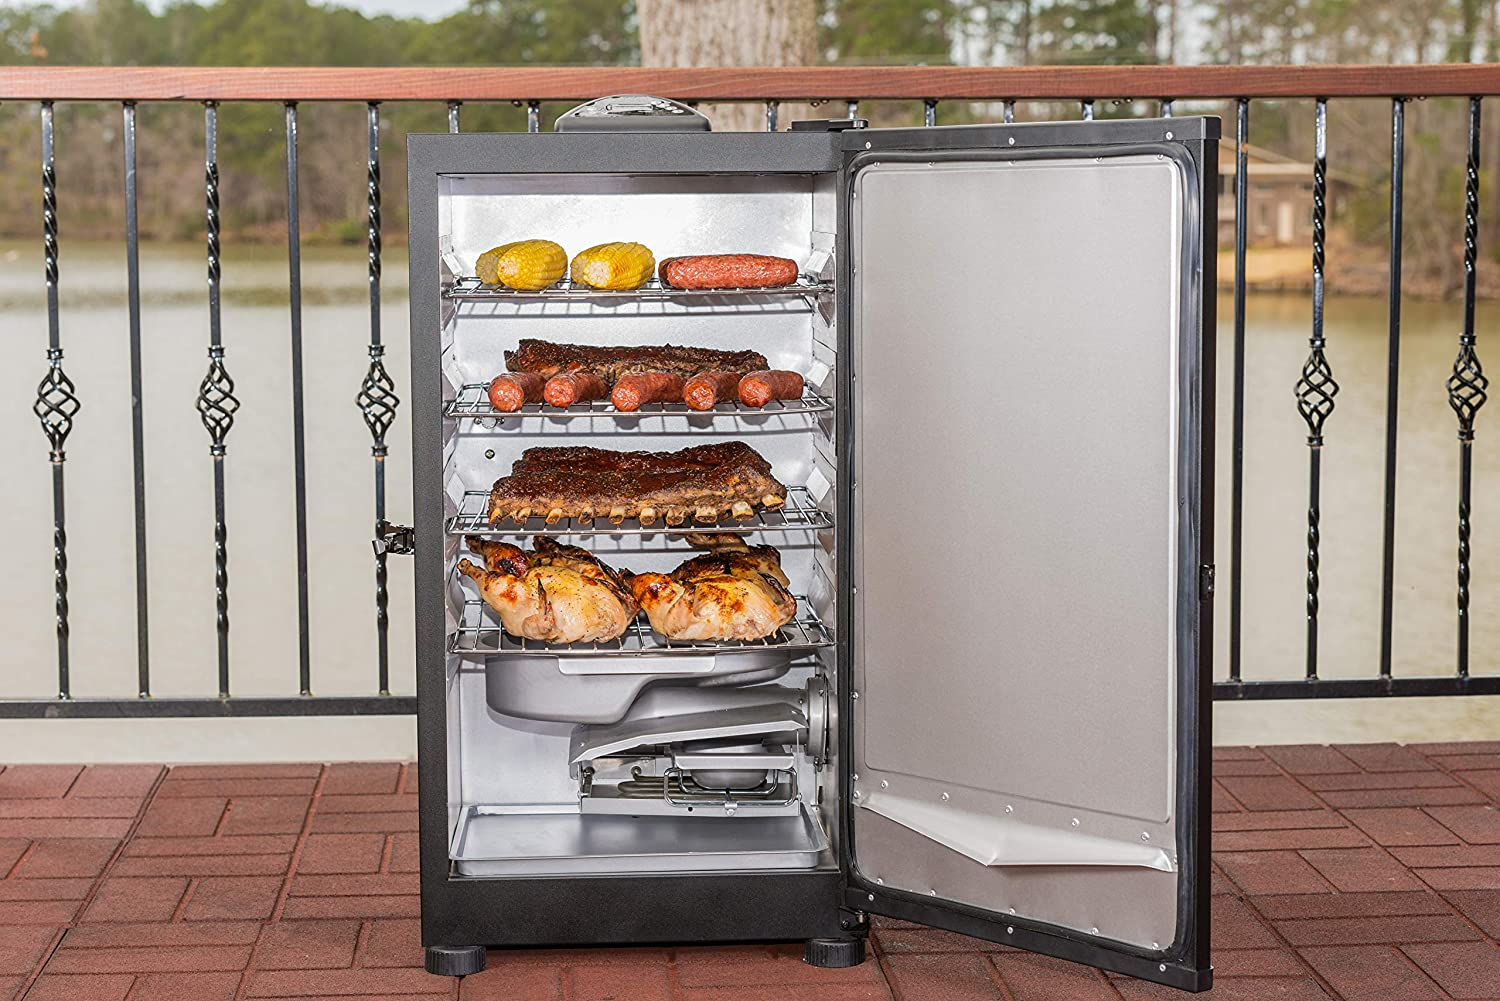 Masterbuilt MB20071117 Digital Electric Smoker, 30 inches, Black